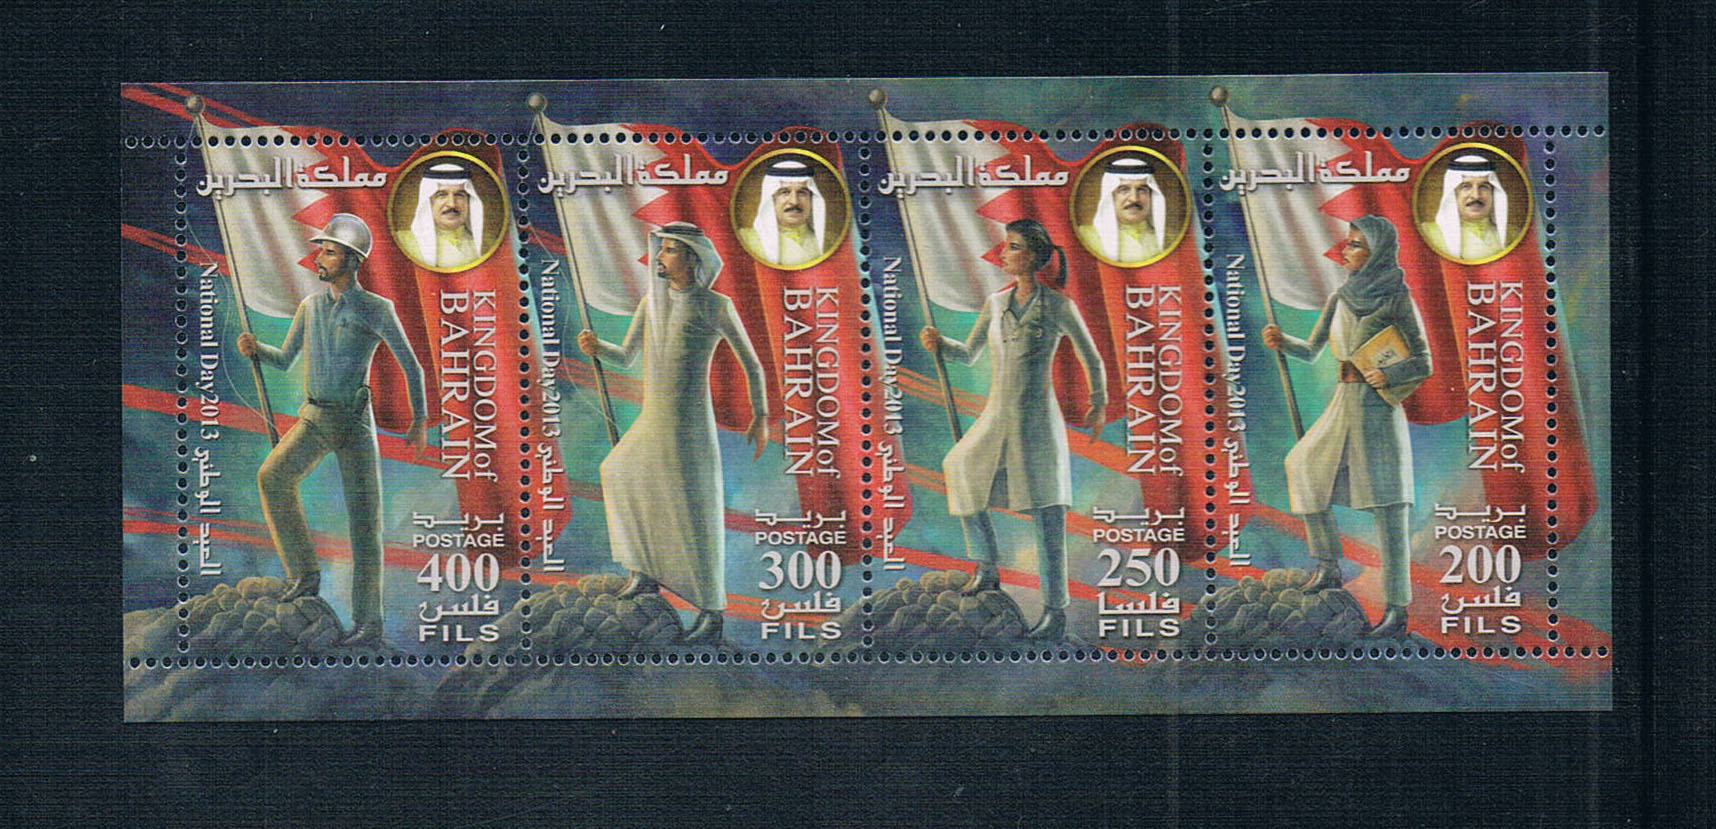 Q2587 Bahrain 2013 National Day Flag dress stamp 1MS new 0626 from 2012 ea1420 1ms new 0626 coastal bird stamps